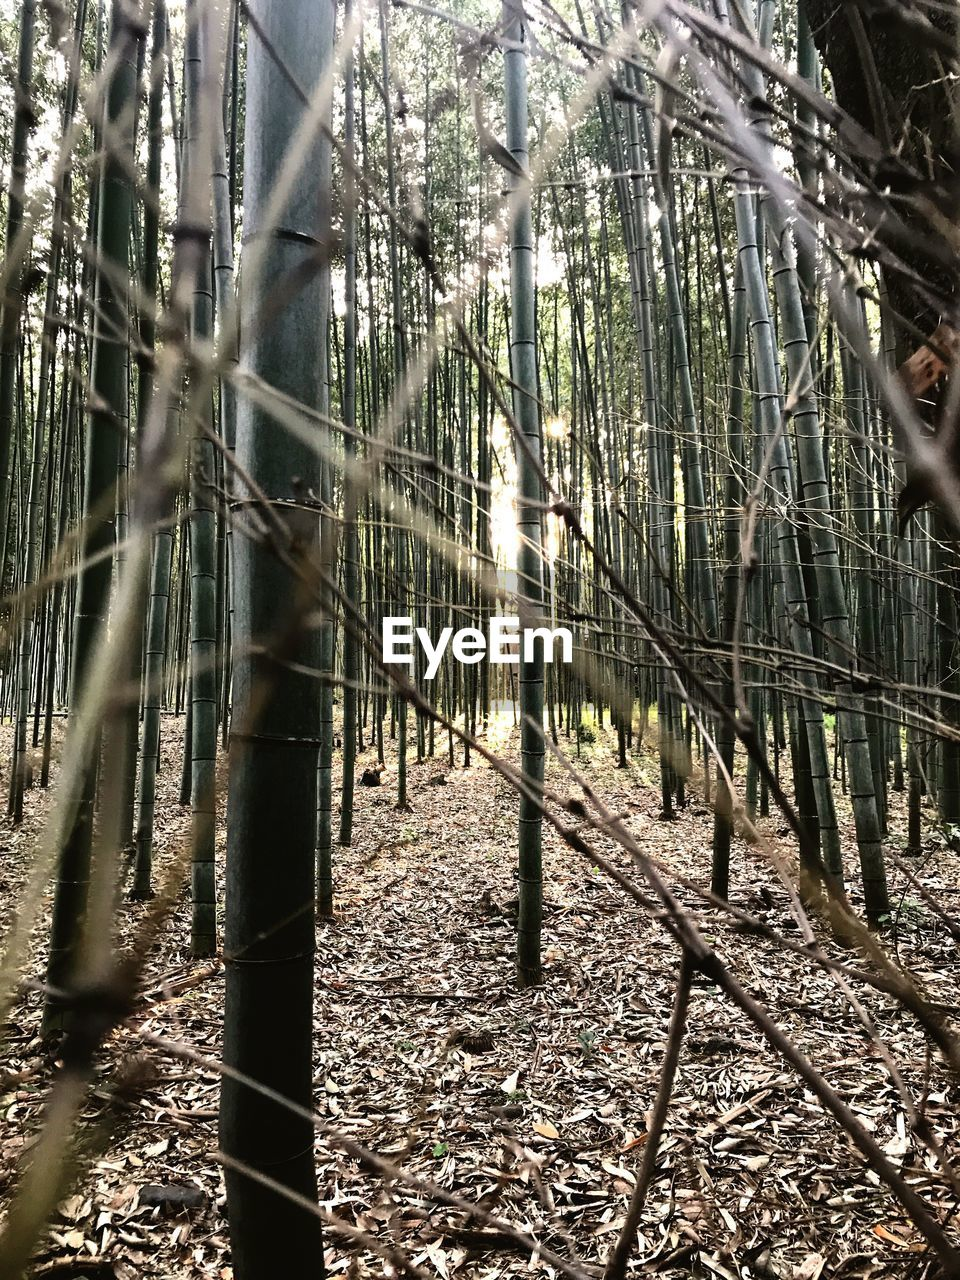 forest, tree, tree trunk, day, bamboo grove, outdoors, bamboo - plant, nature, sunlight, tranquility, branch, beauty in nature, growth, no people